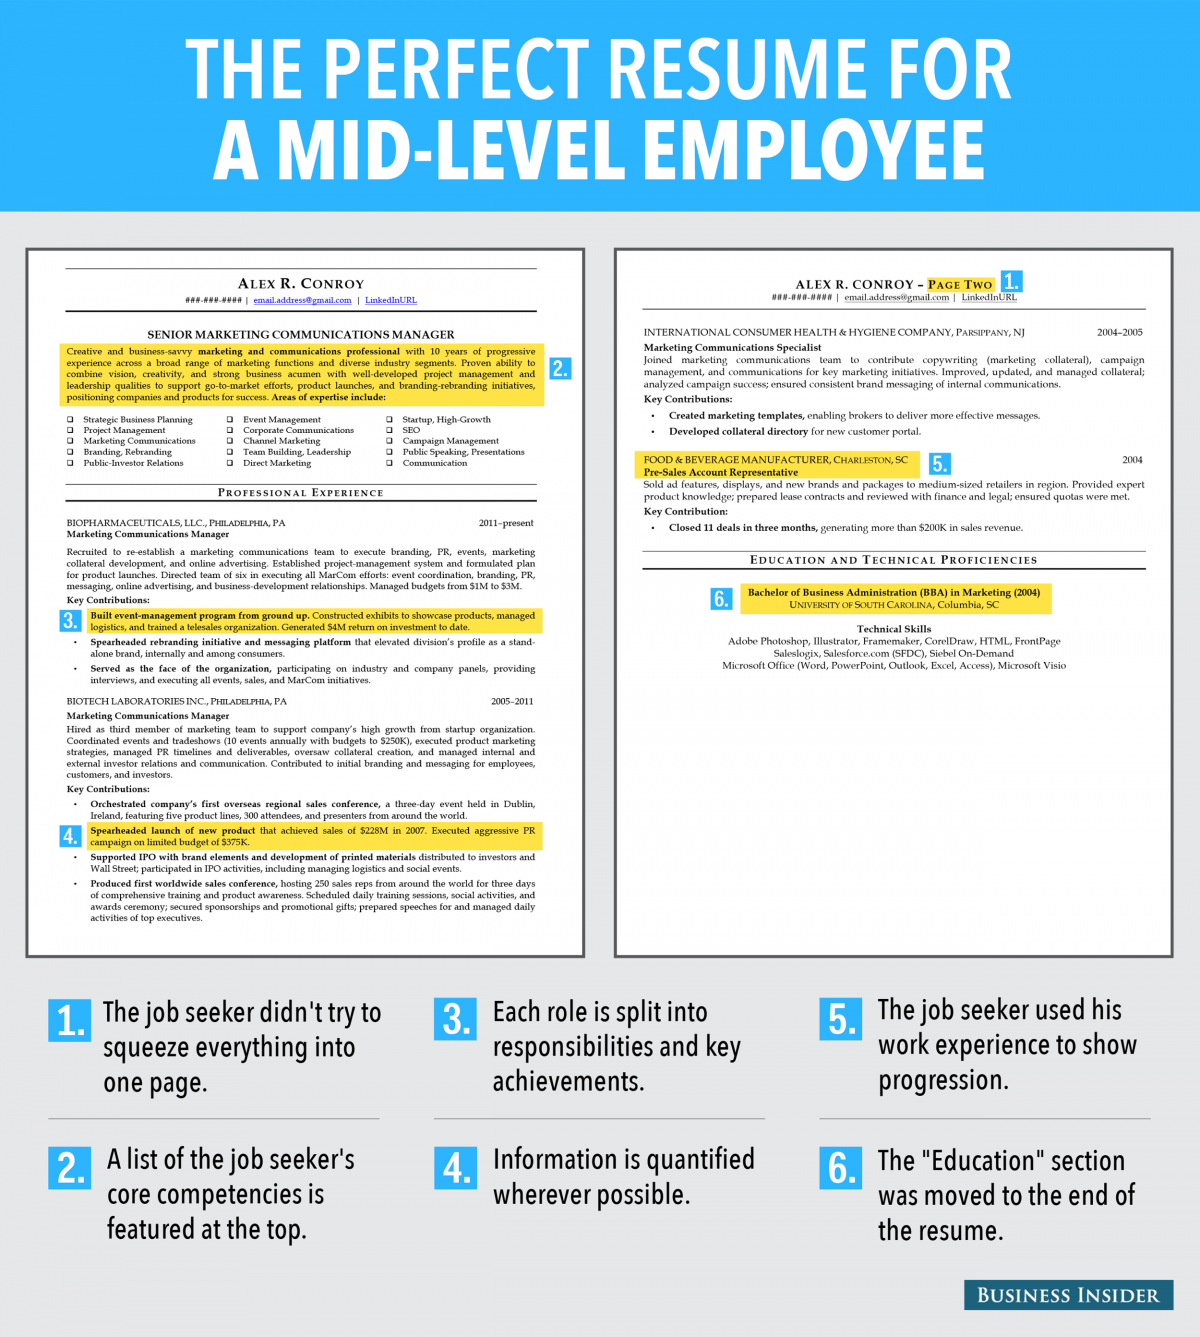 resume Things You Need For A Resume 8 things you should always include on your career advice your